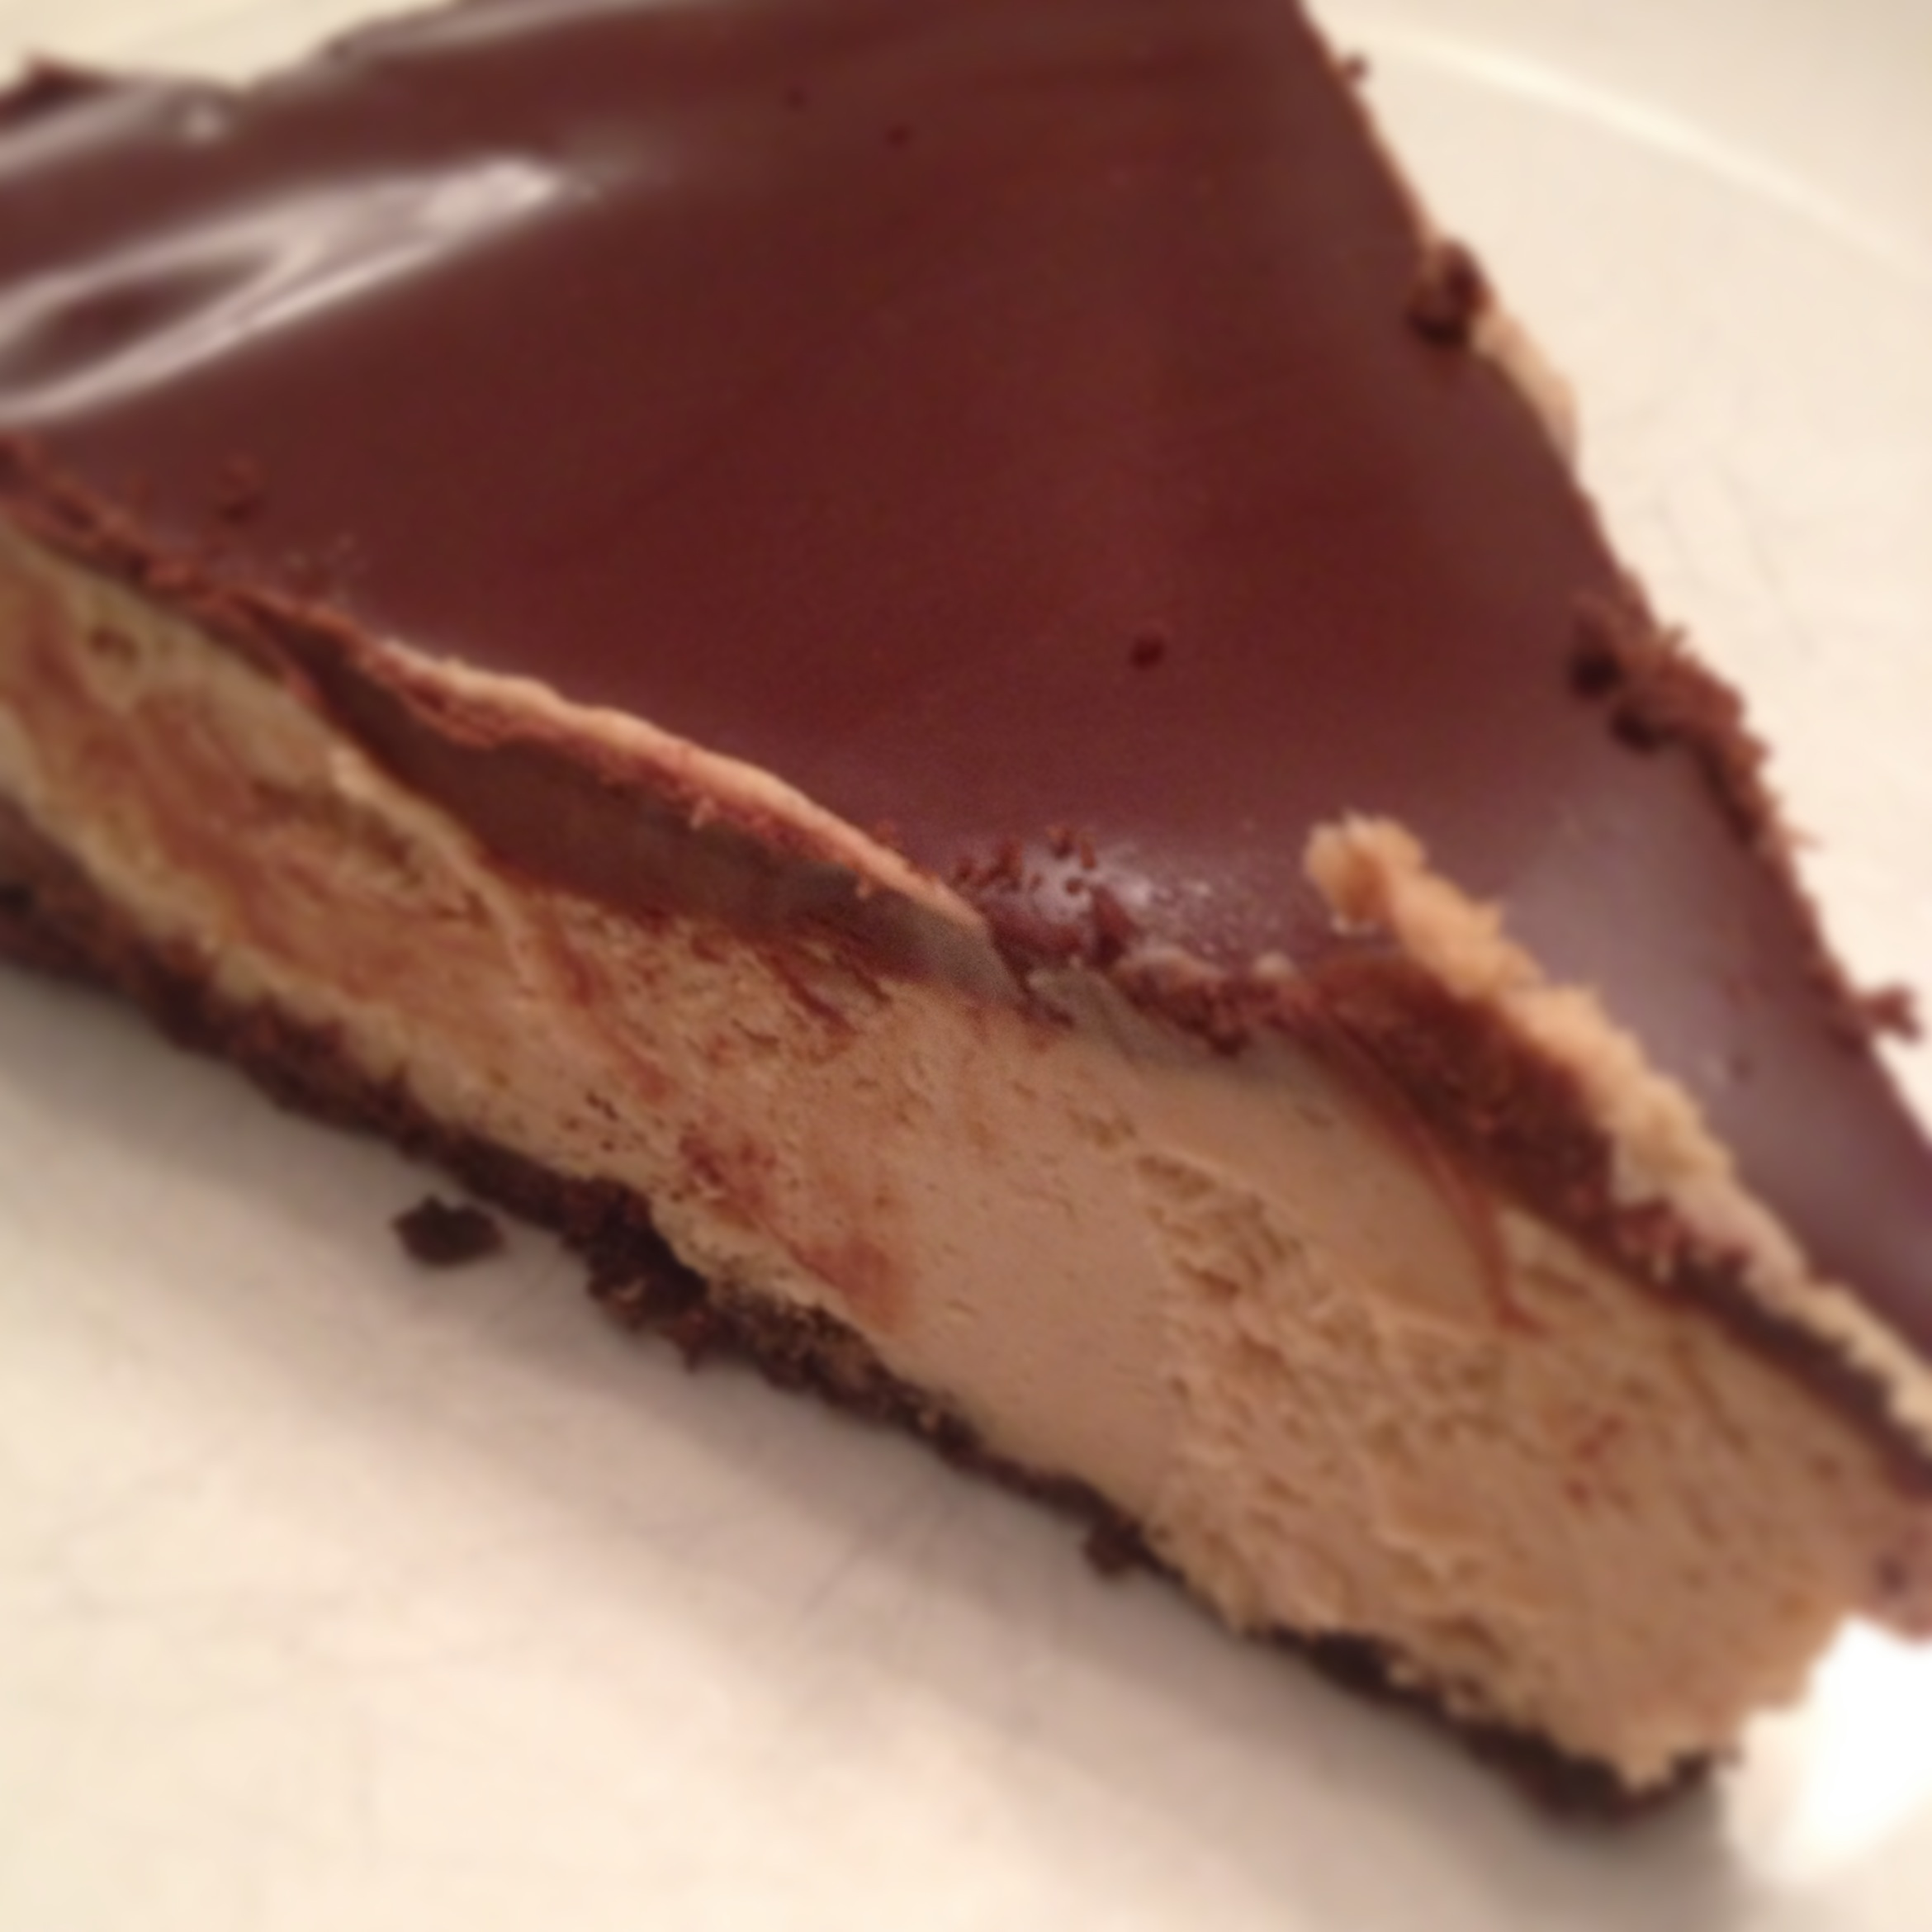 Chocolate Peanut Butter Pie | Kathy's Kitchen Table